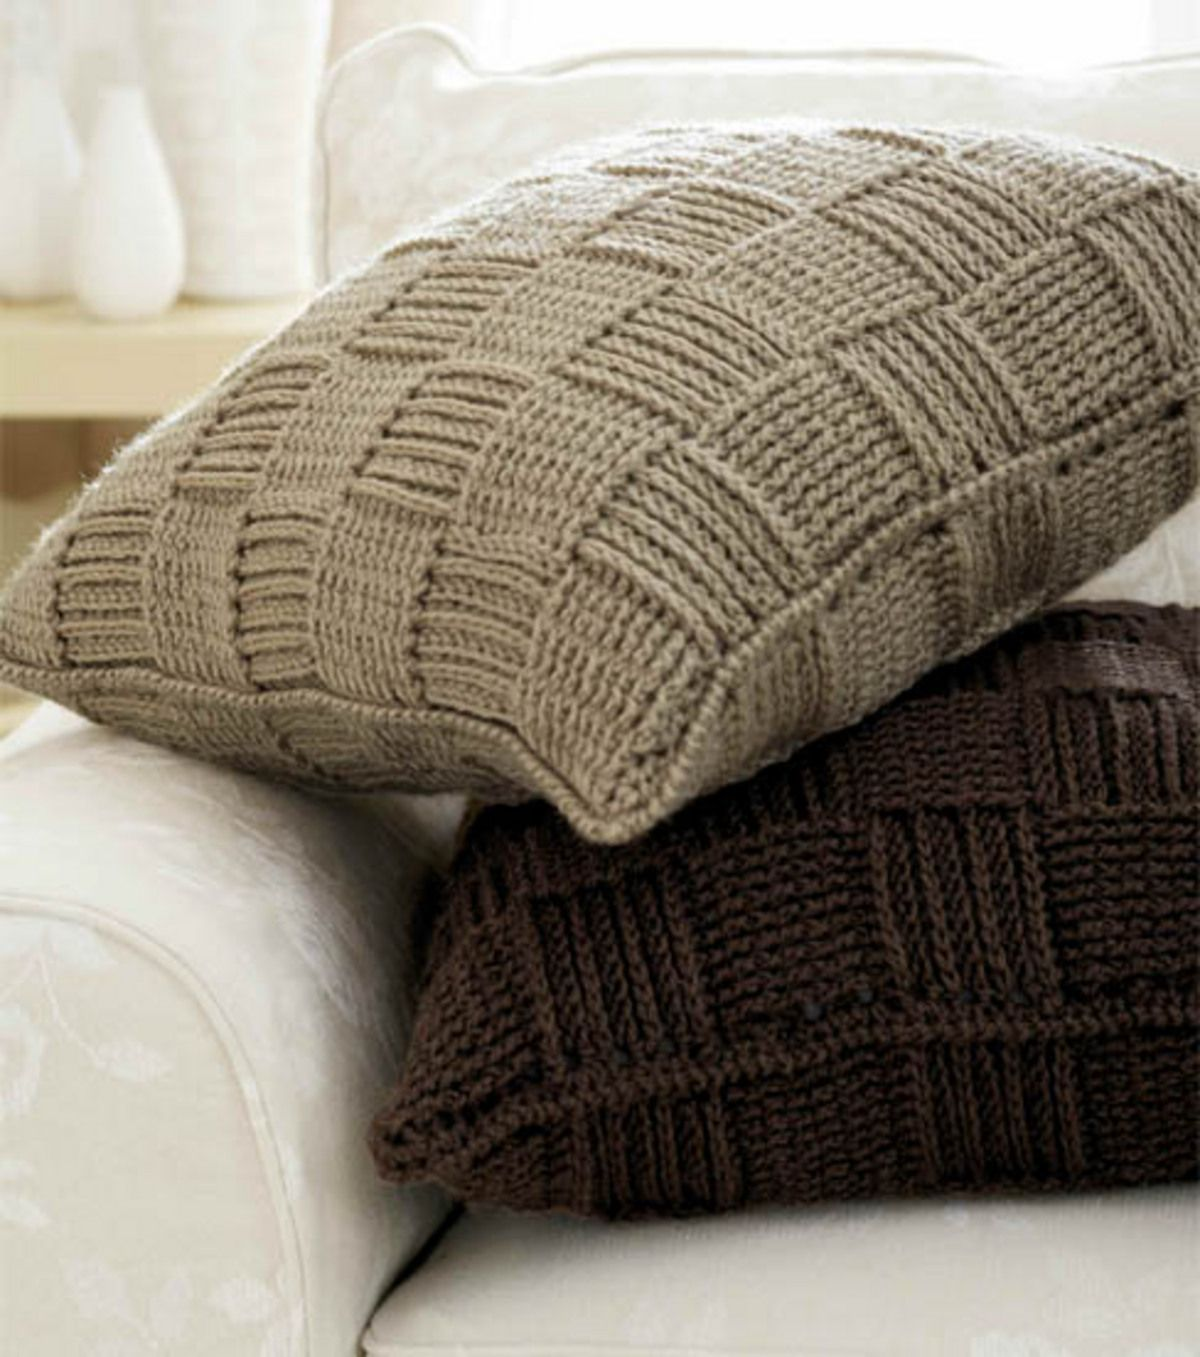 Knitting Pillows : Diy crochet throw pillows free pattern available at